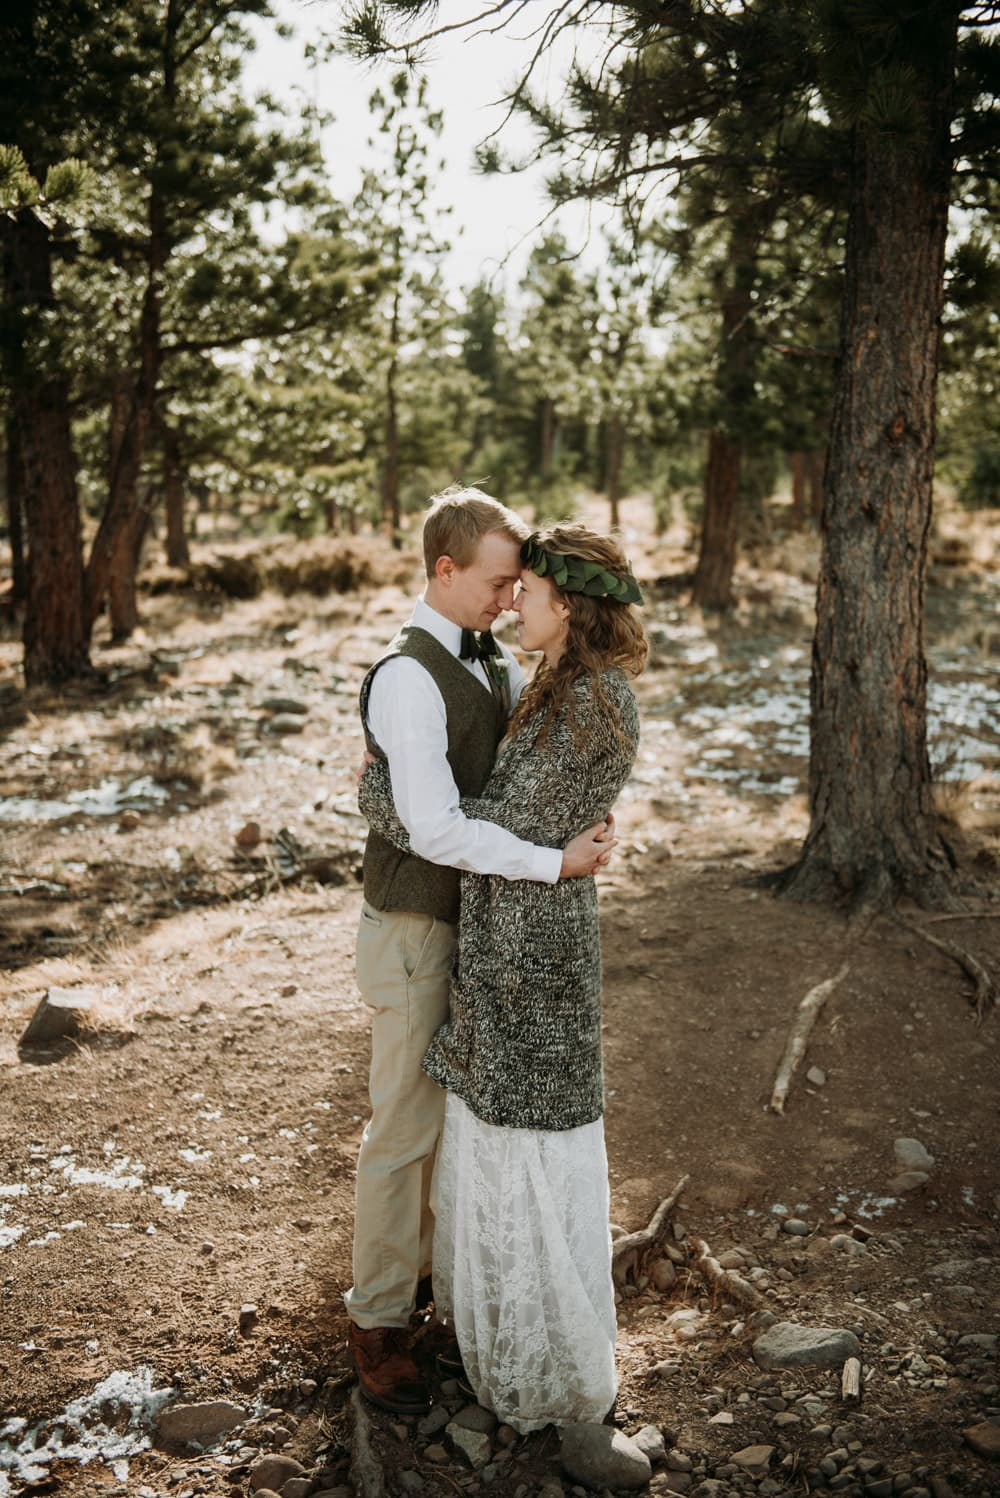 Intimate wedding in Westcliffe, Colorado. Tucked away in the mountains at a chapel in a Colorado forest of evergreens.